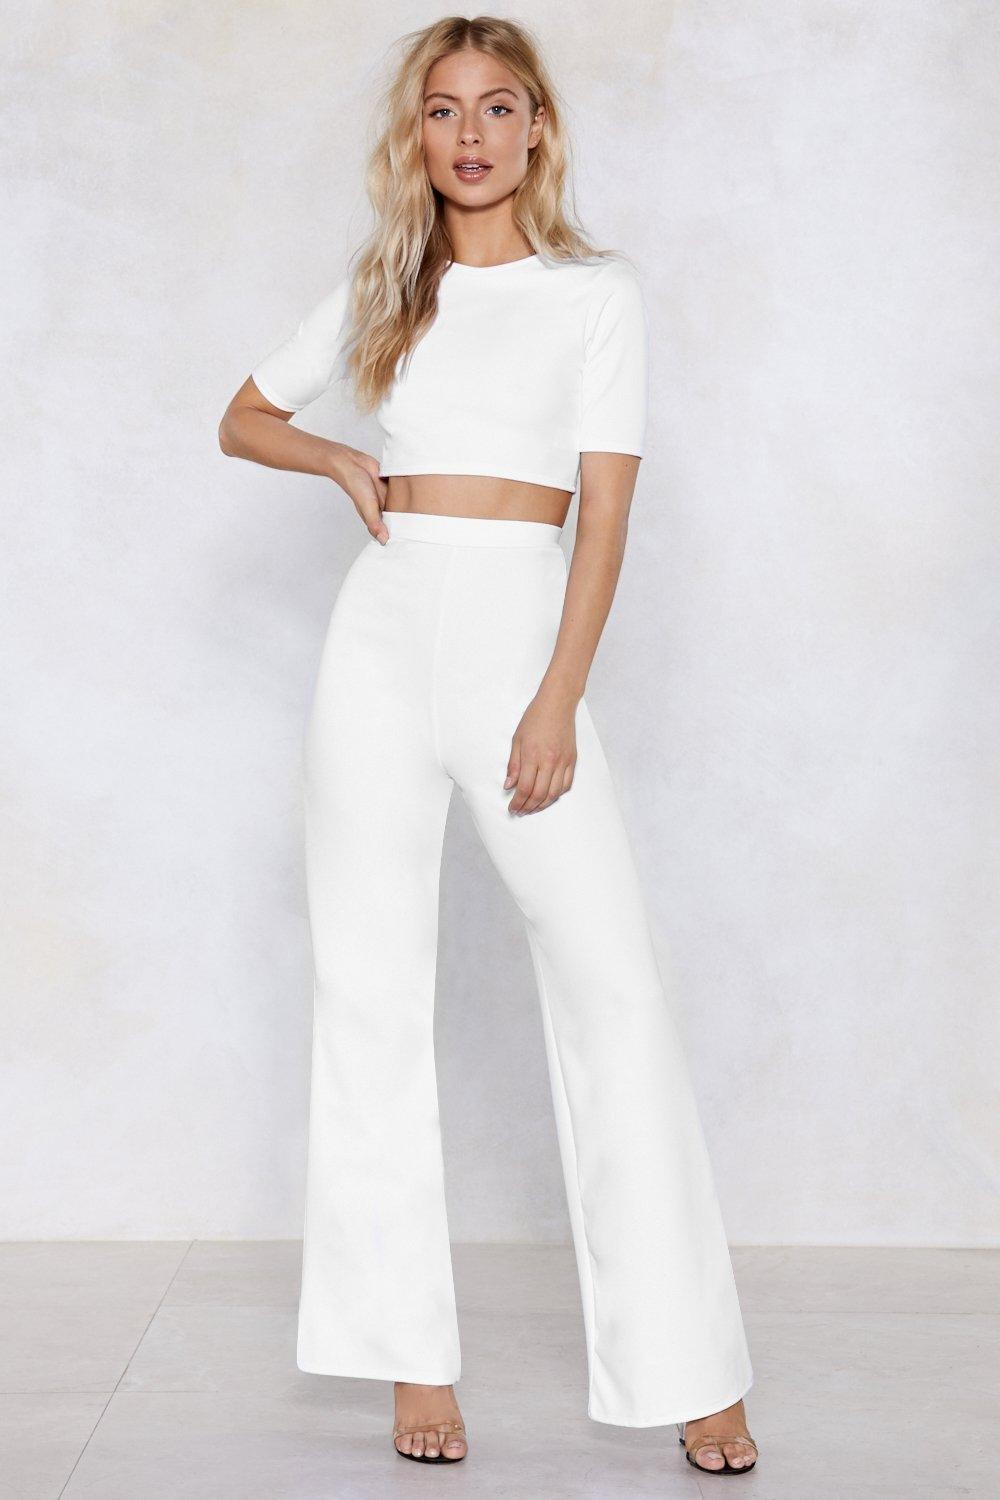 823a86a9b19ba9 Settle the Score Crop Top and Pants Set | Shop Clothes at Nasty Gal!